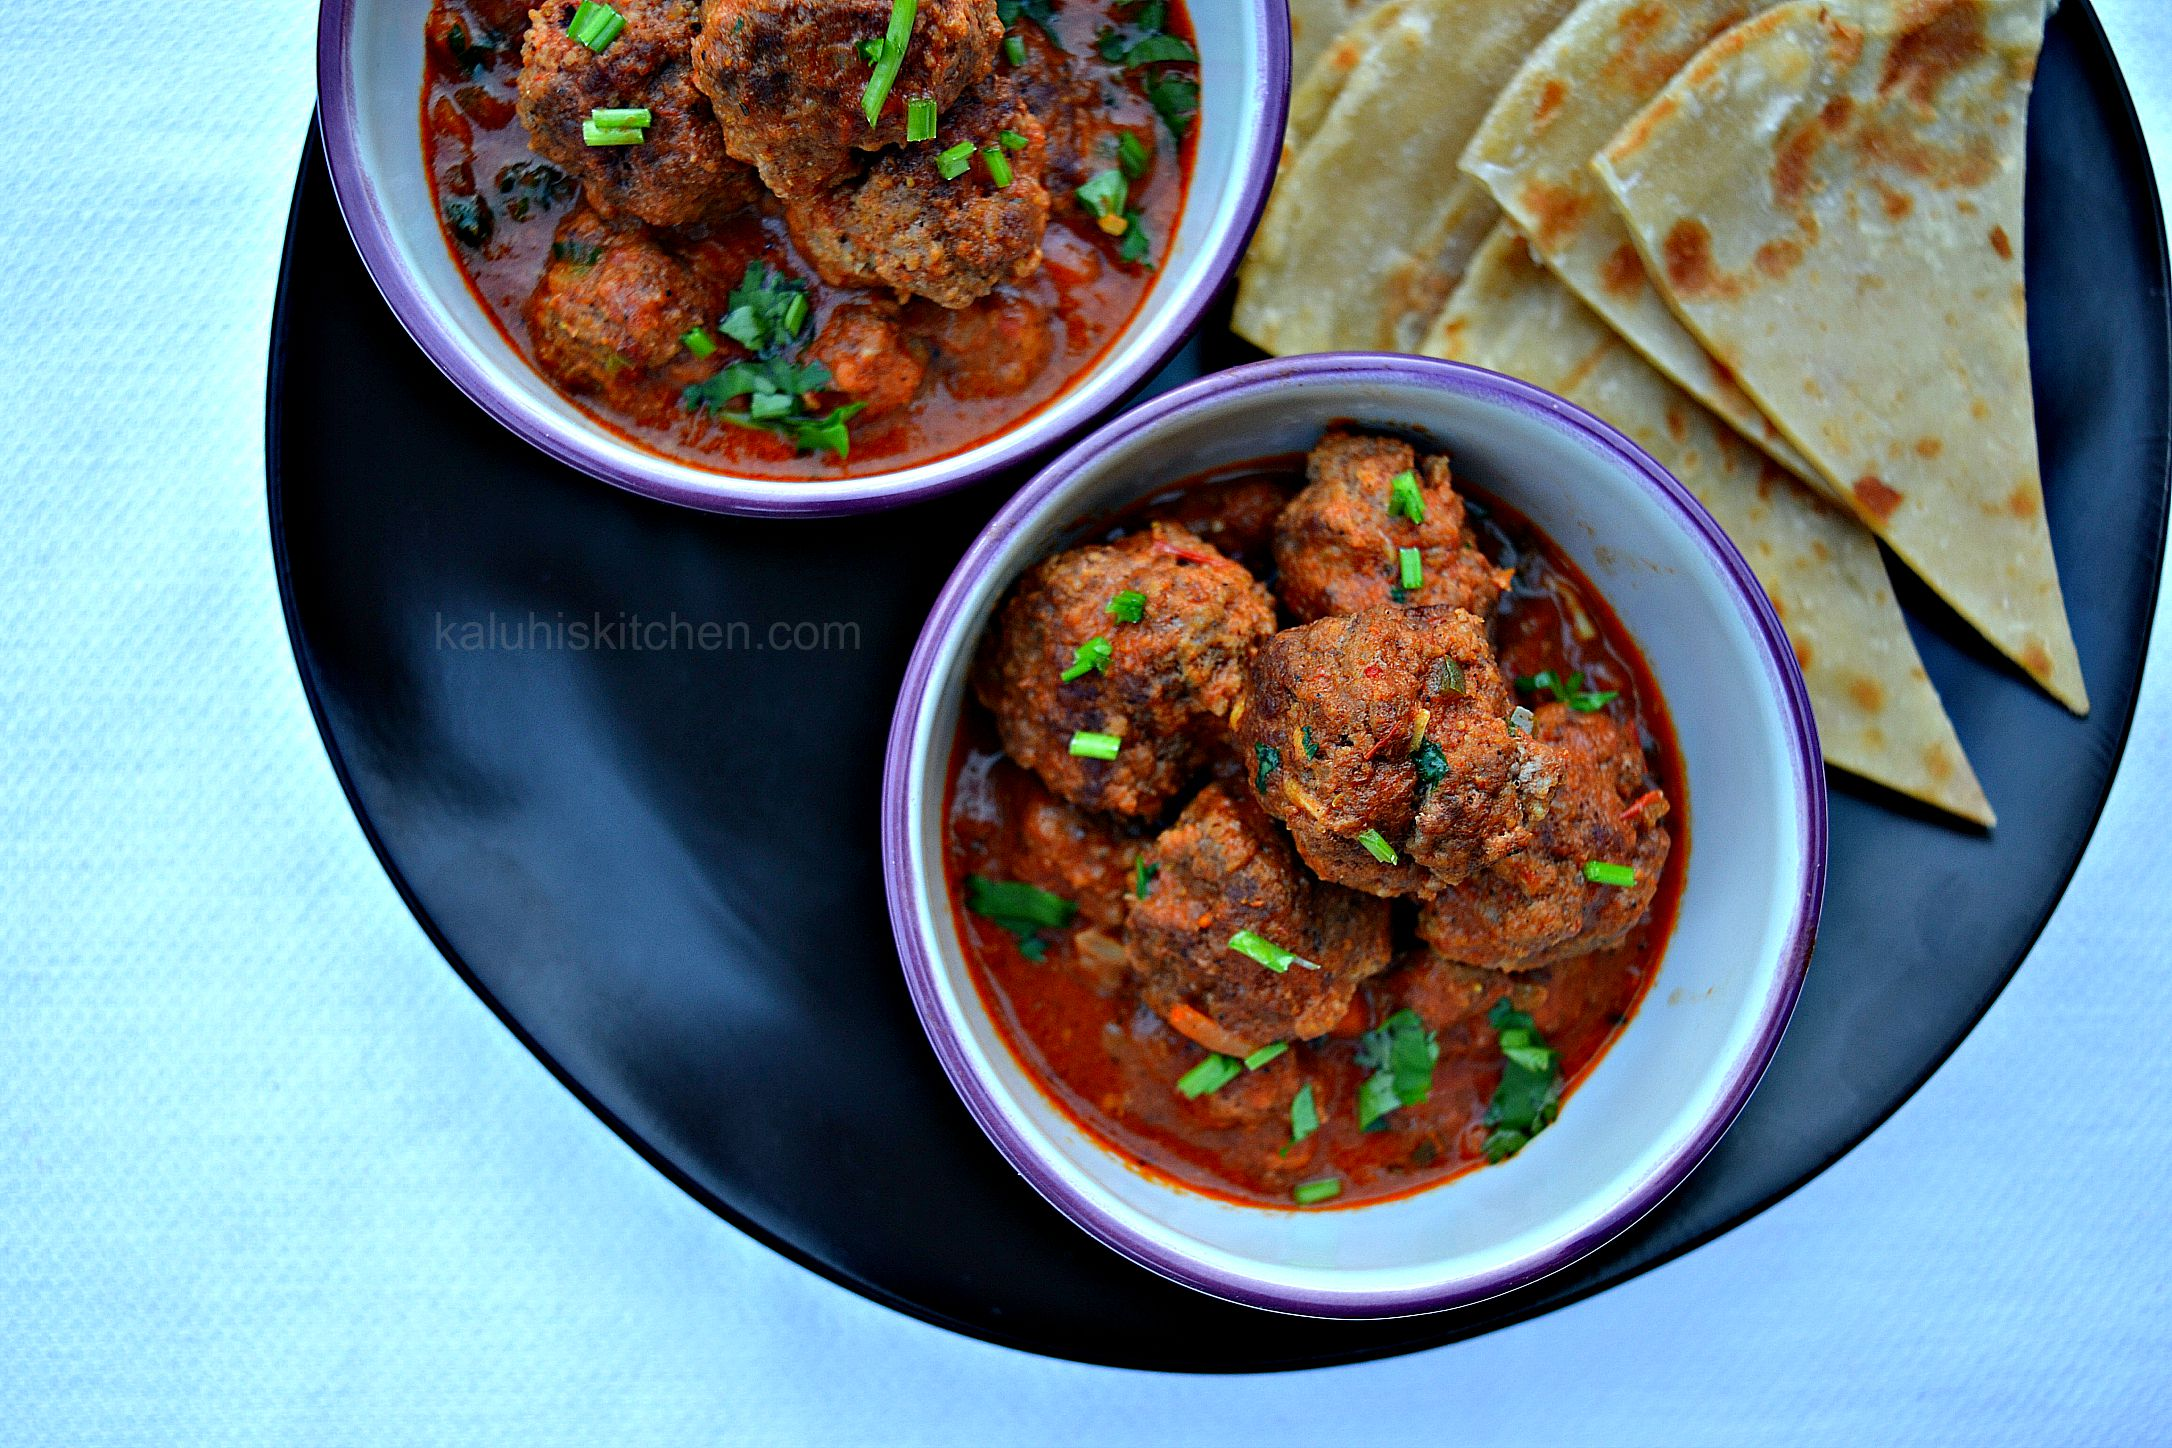 kenyan food blogs_ kaluhiskitchen.com_best meatball recipe_kenyan food